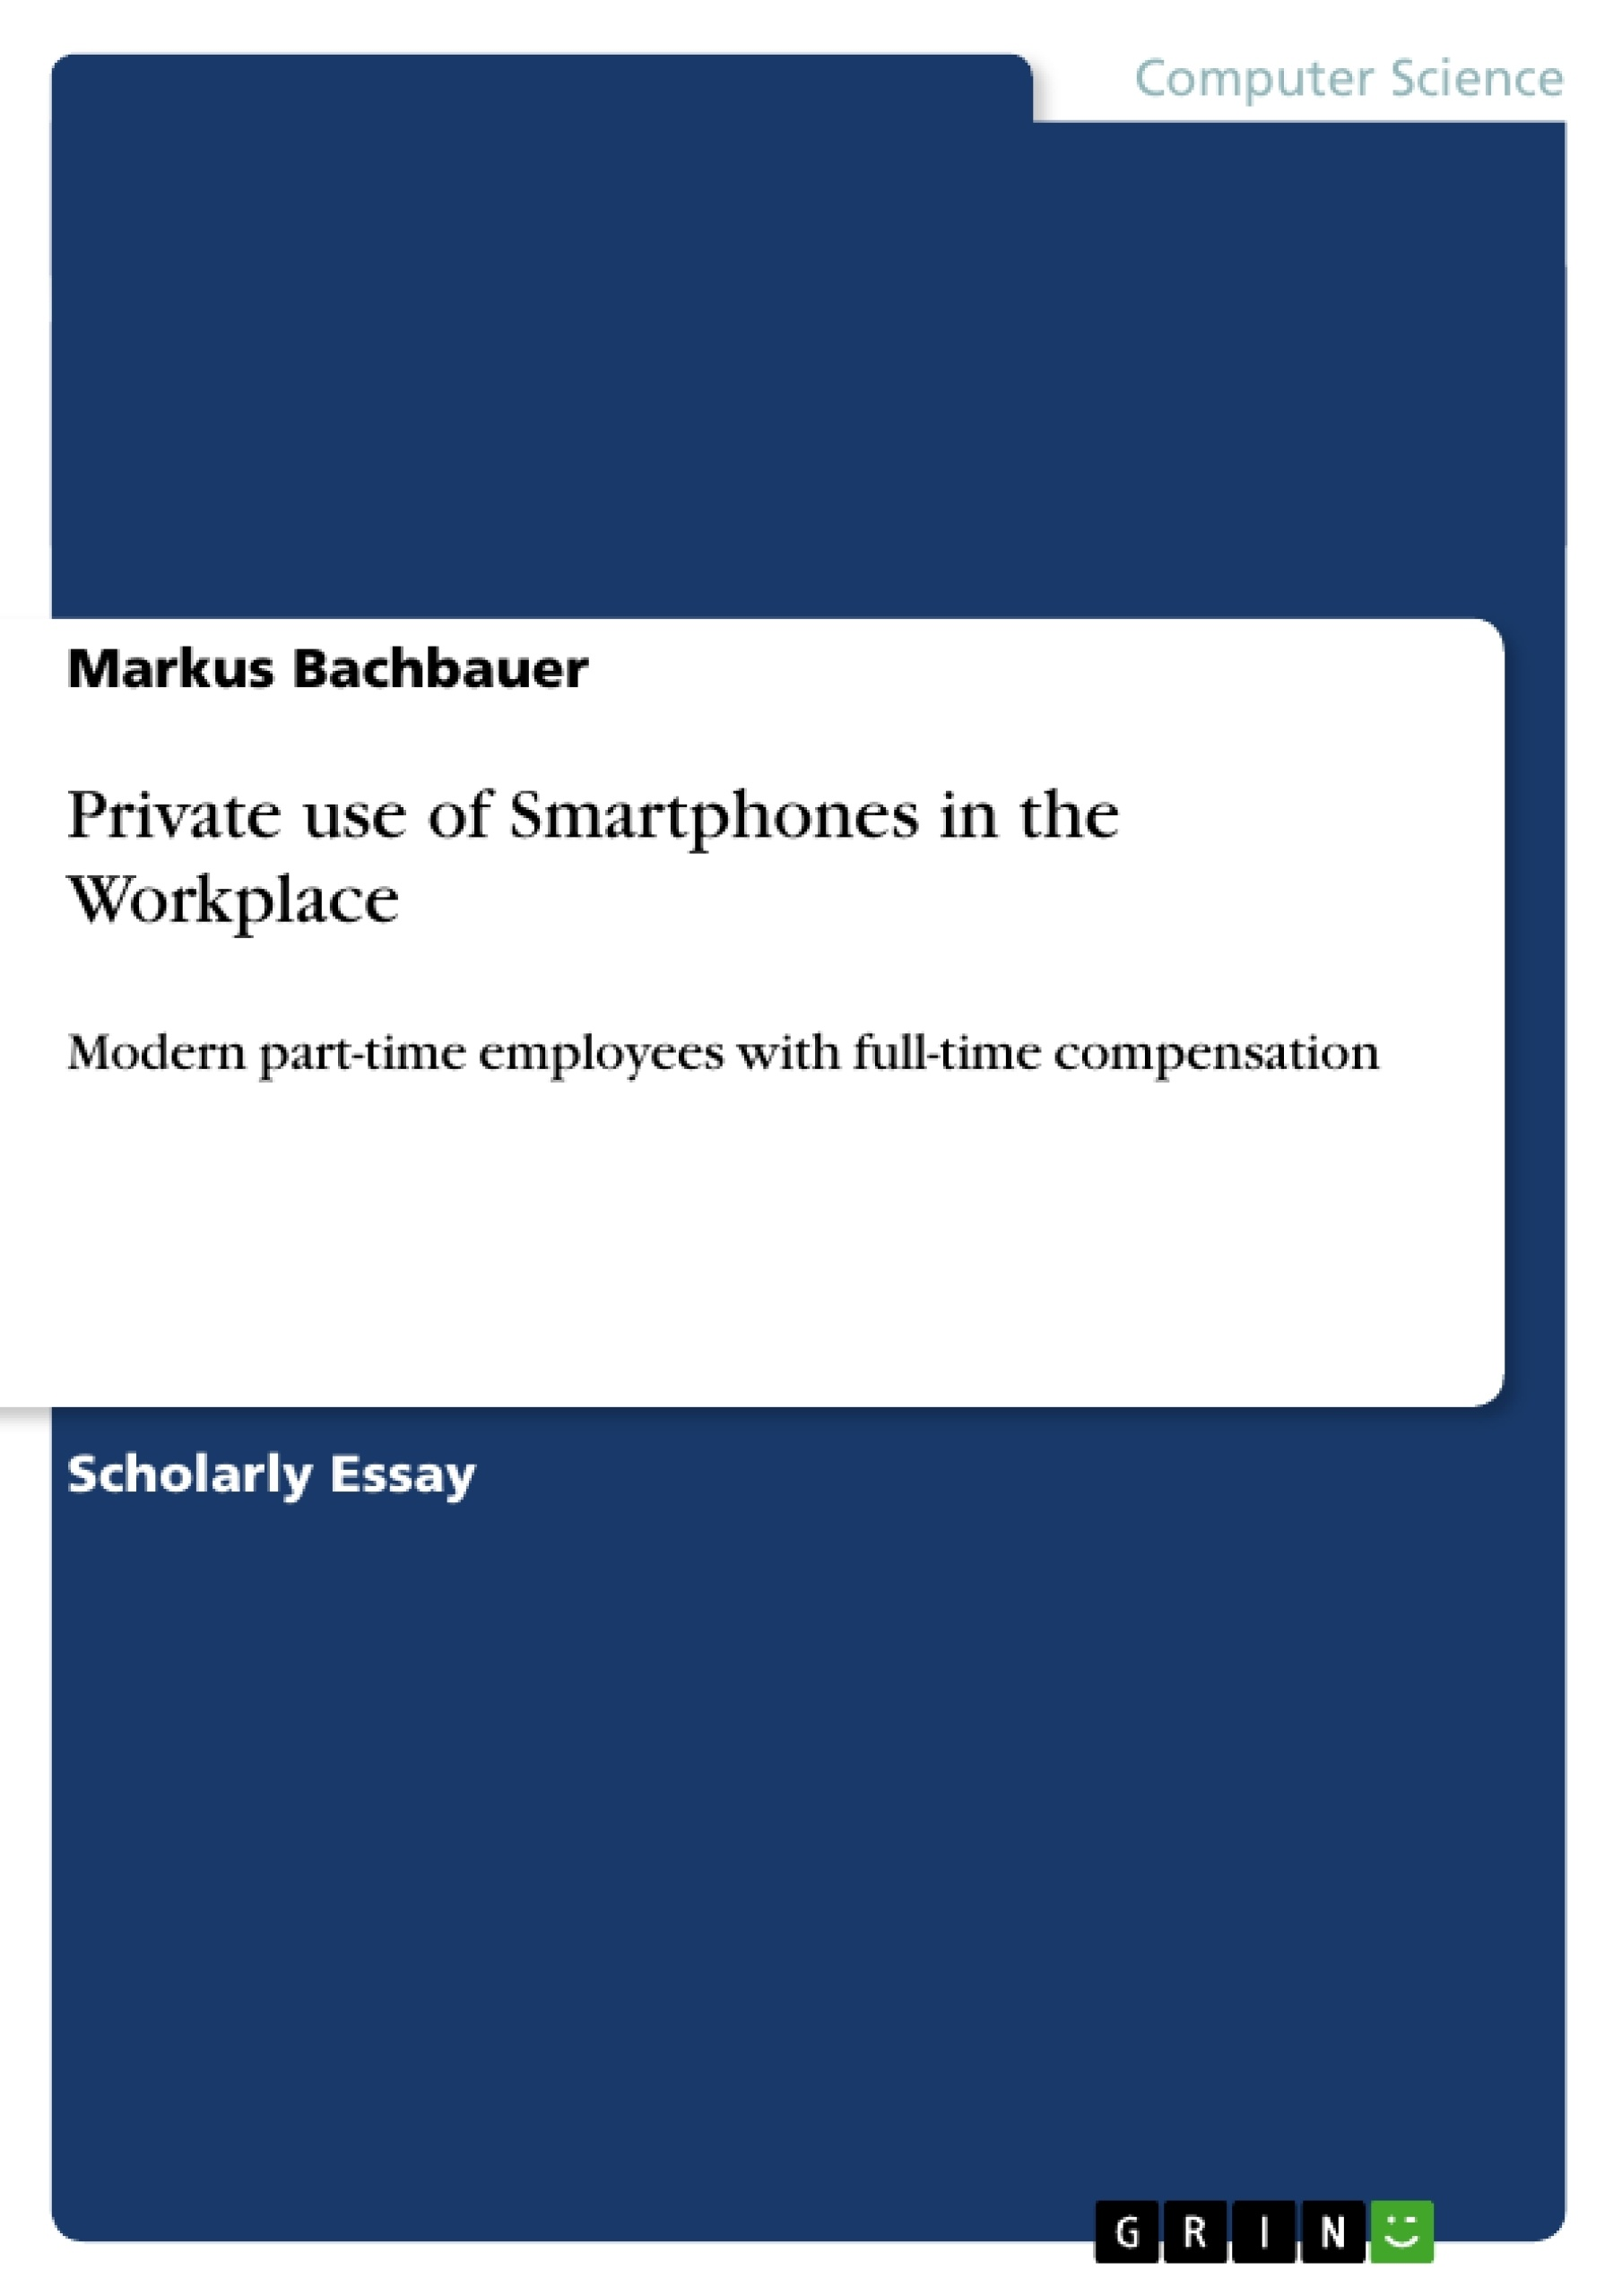 Title: Private use of Smartphones in the Workplace